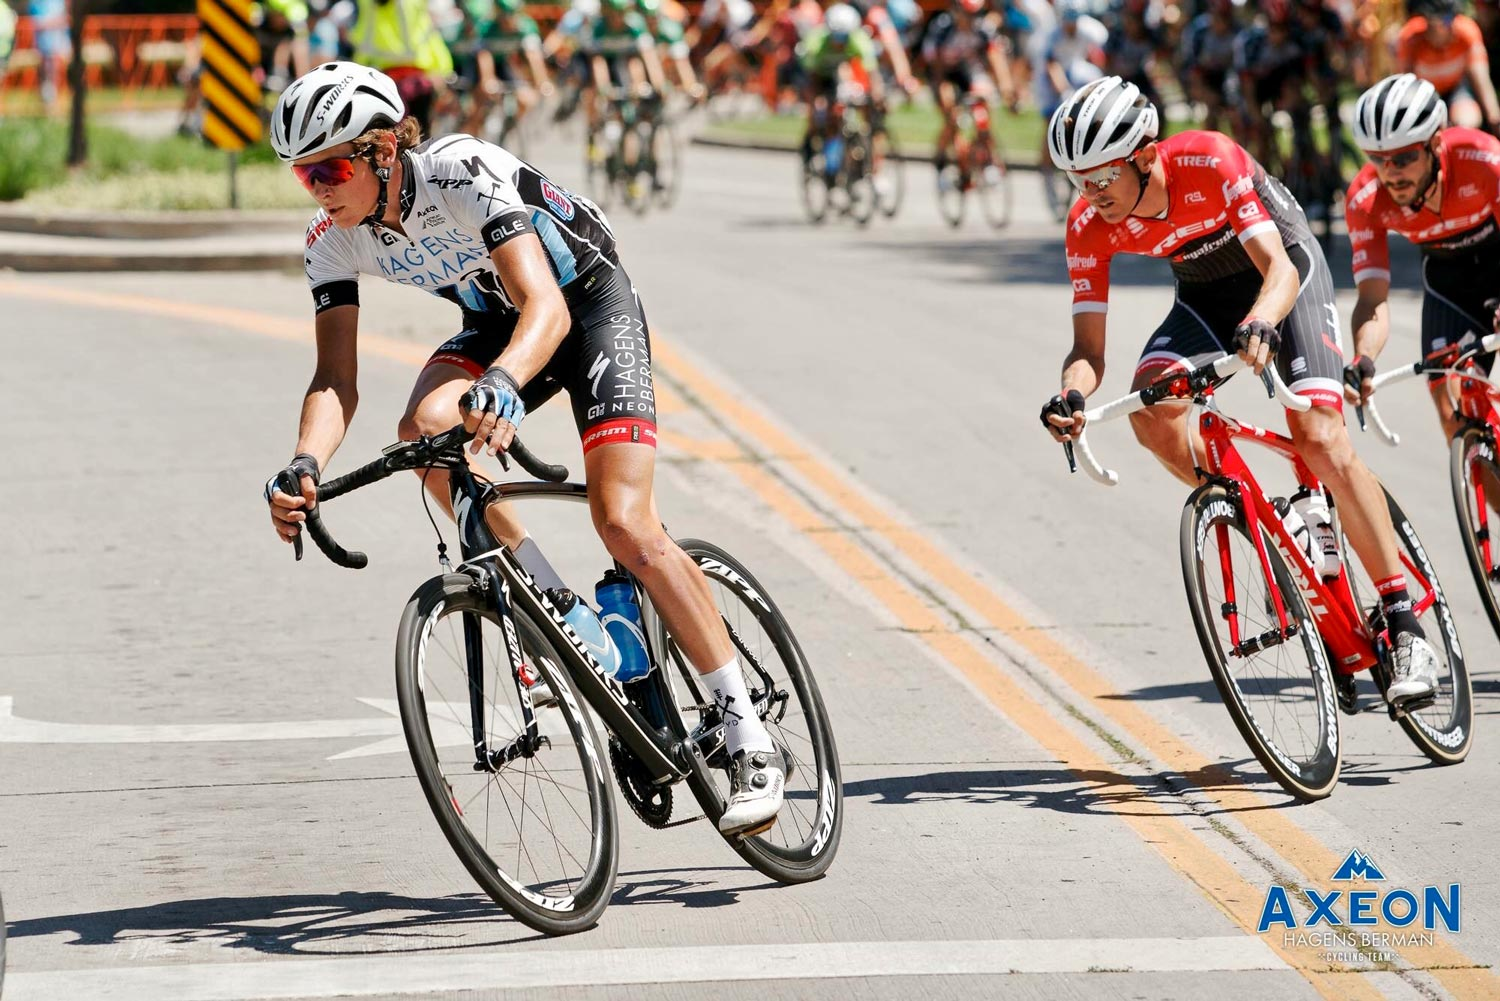 Anderson racing in the Colorado Classic in August, a four-stage race covering 313 miles.